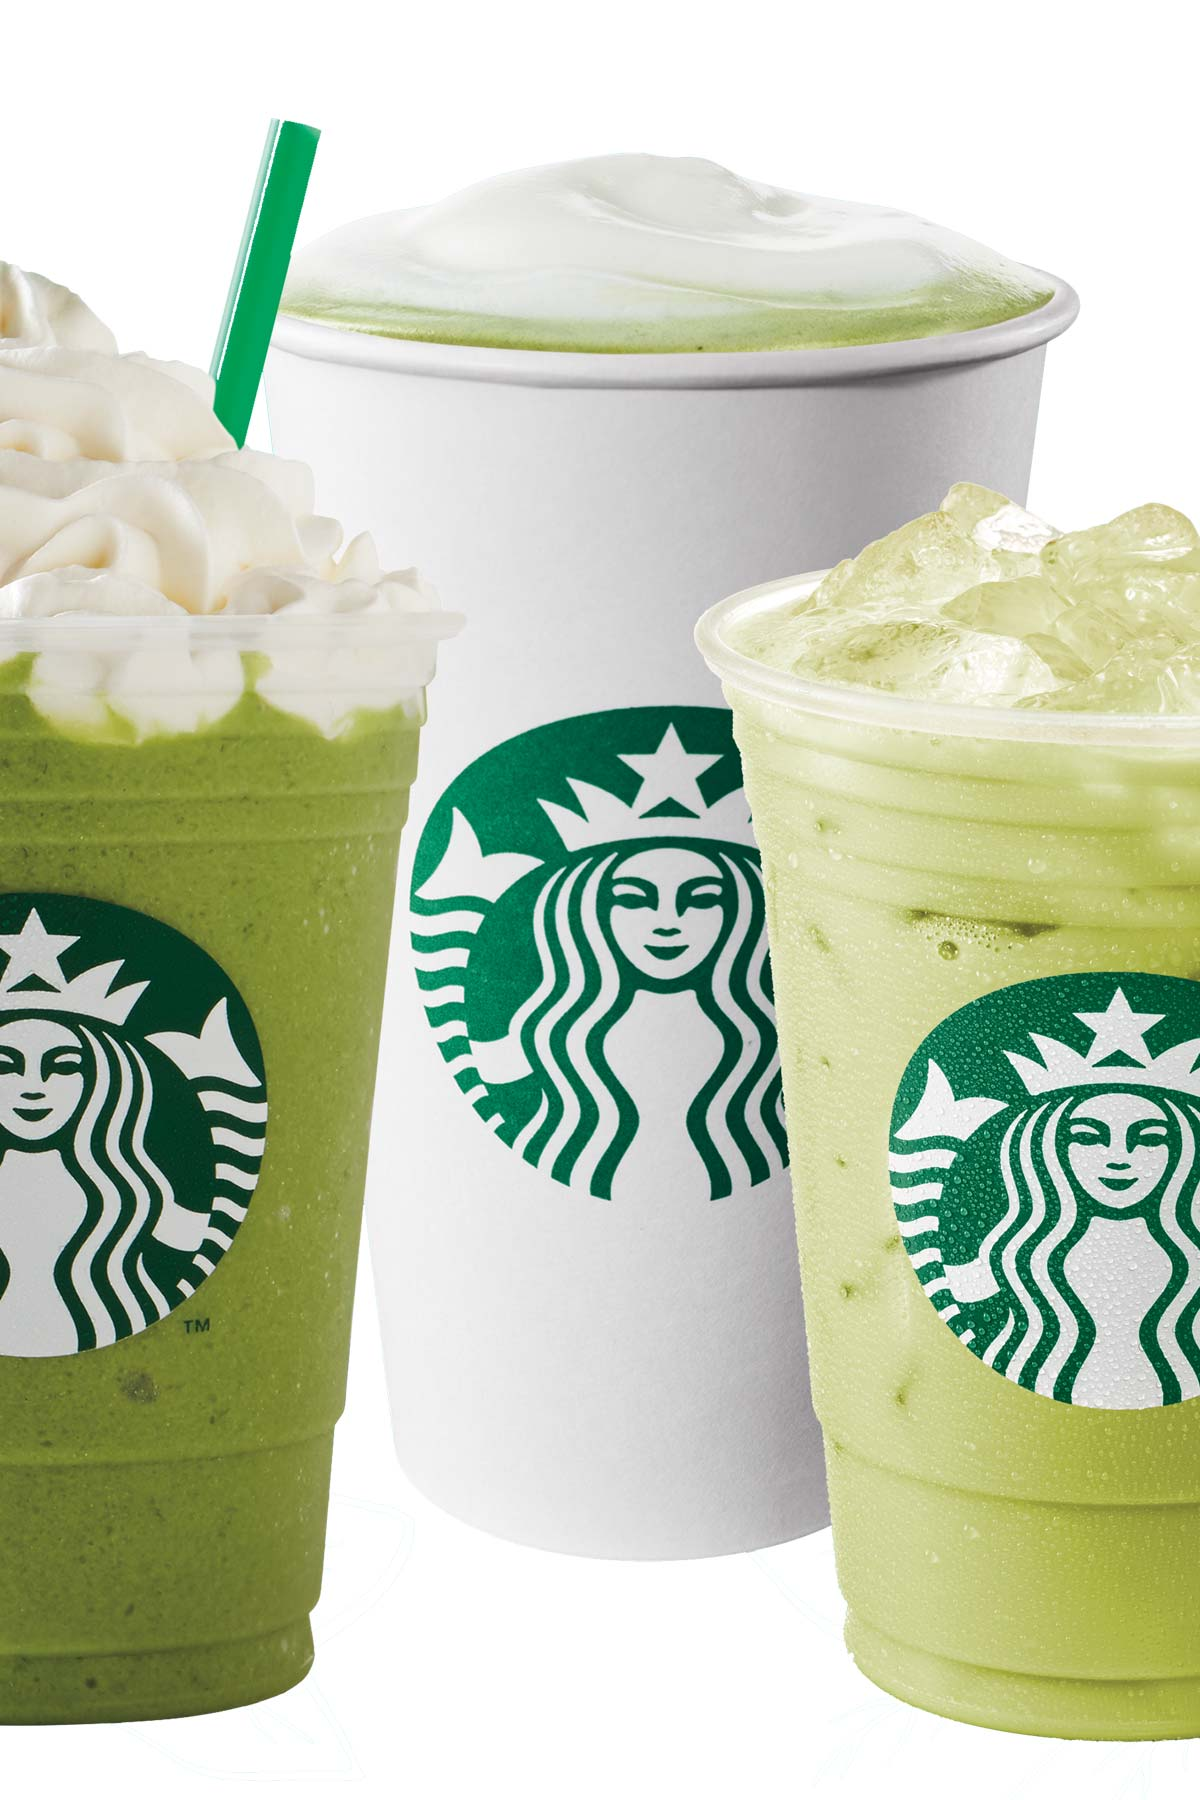 Three Starbucks matcha drinks.